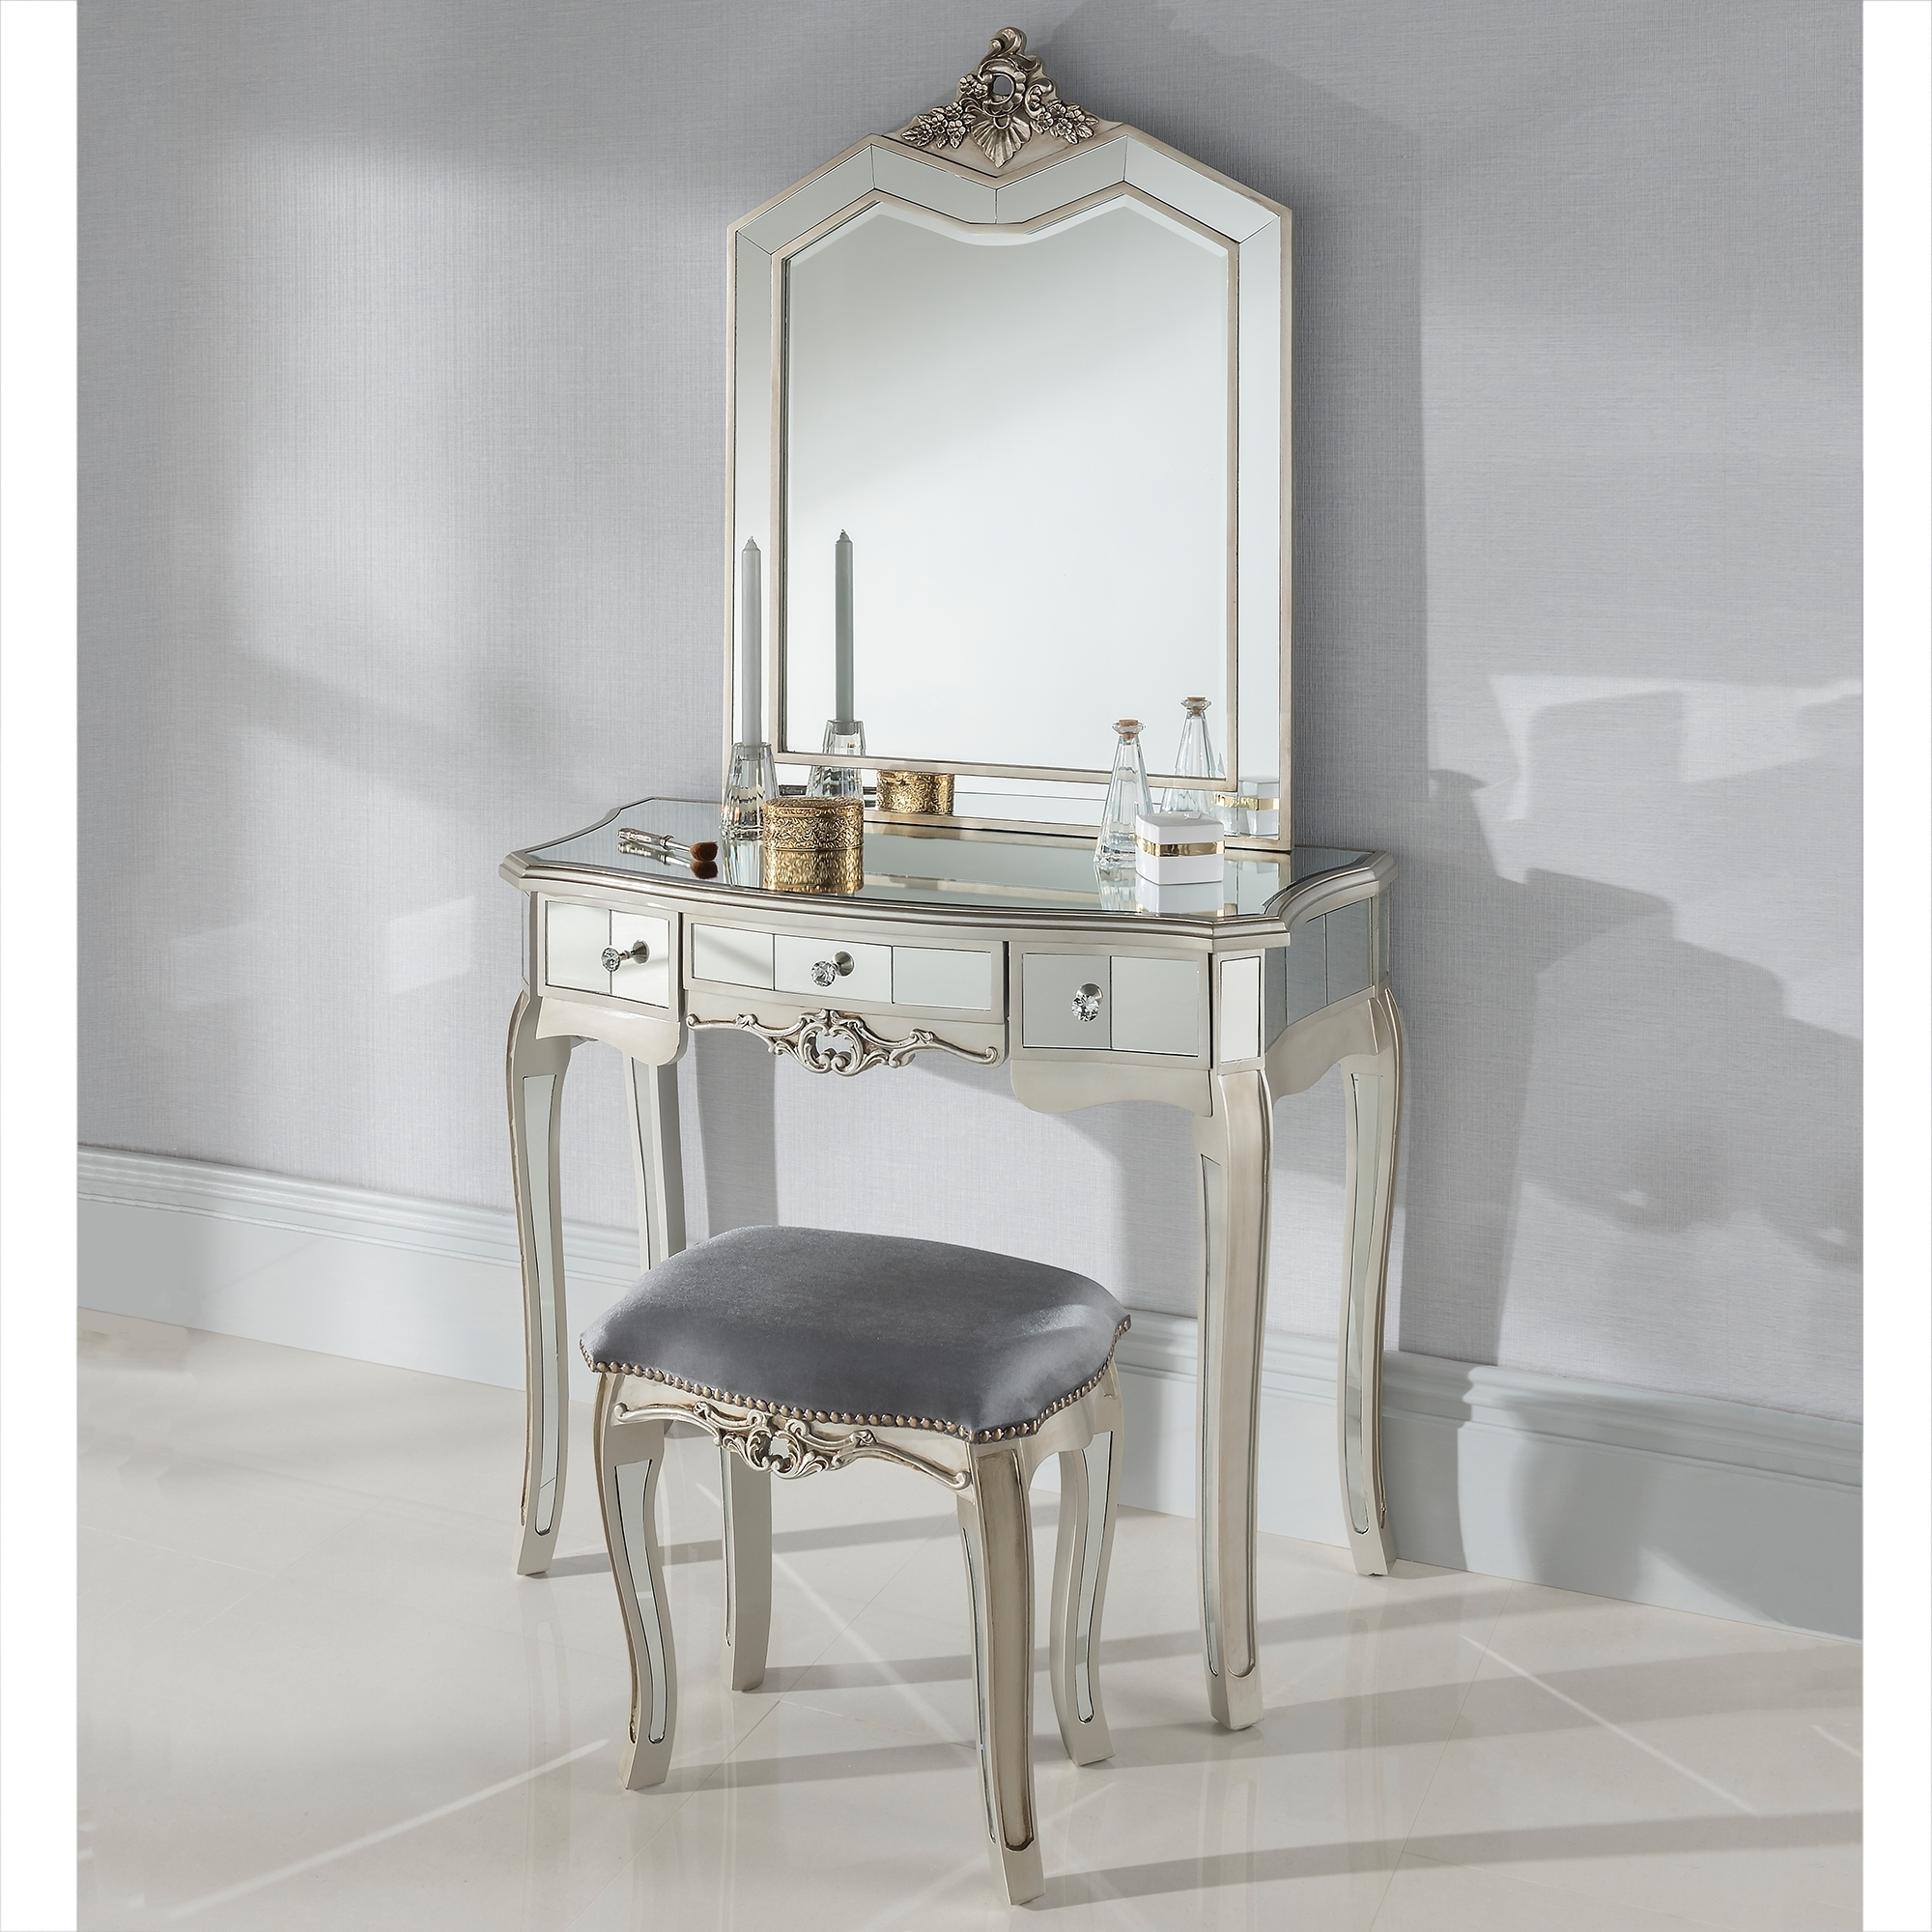 Argente Mirrored Antique French Style Dressing Table Set French Regarding French Style Dressing Table Mirror (Image 4 of 15)